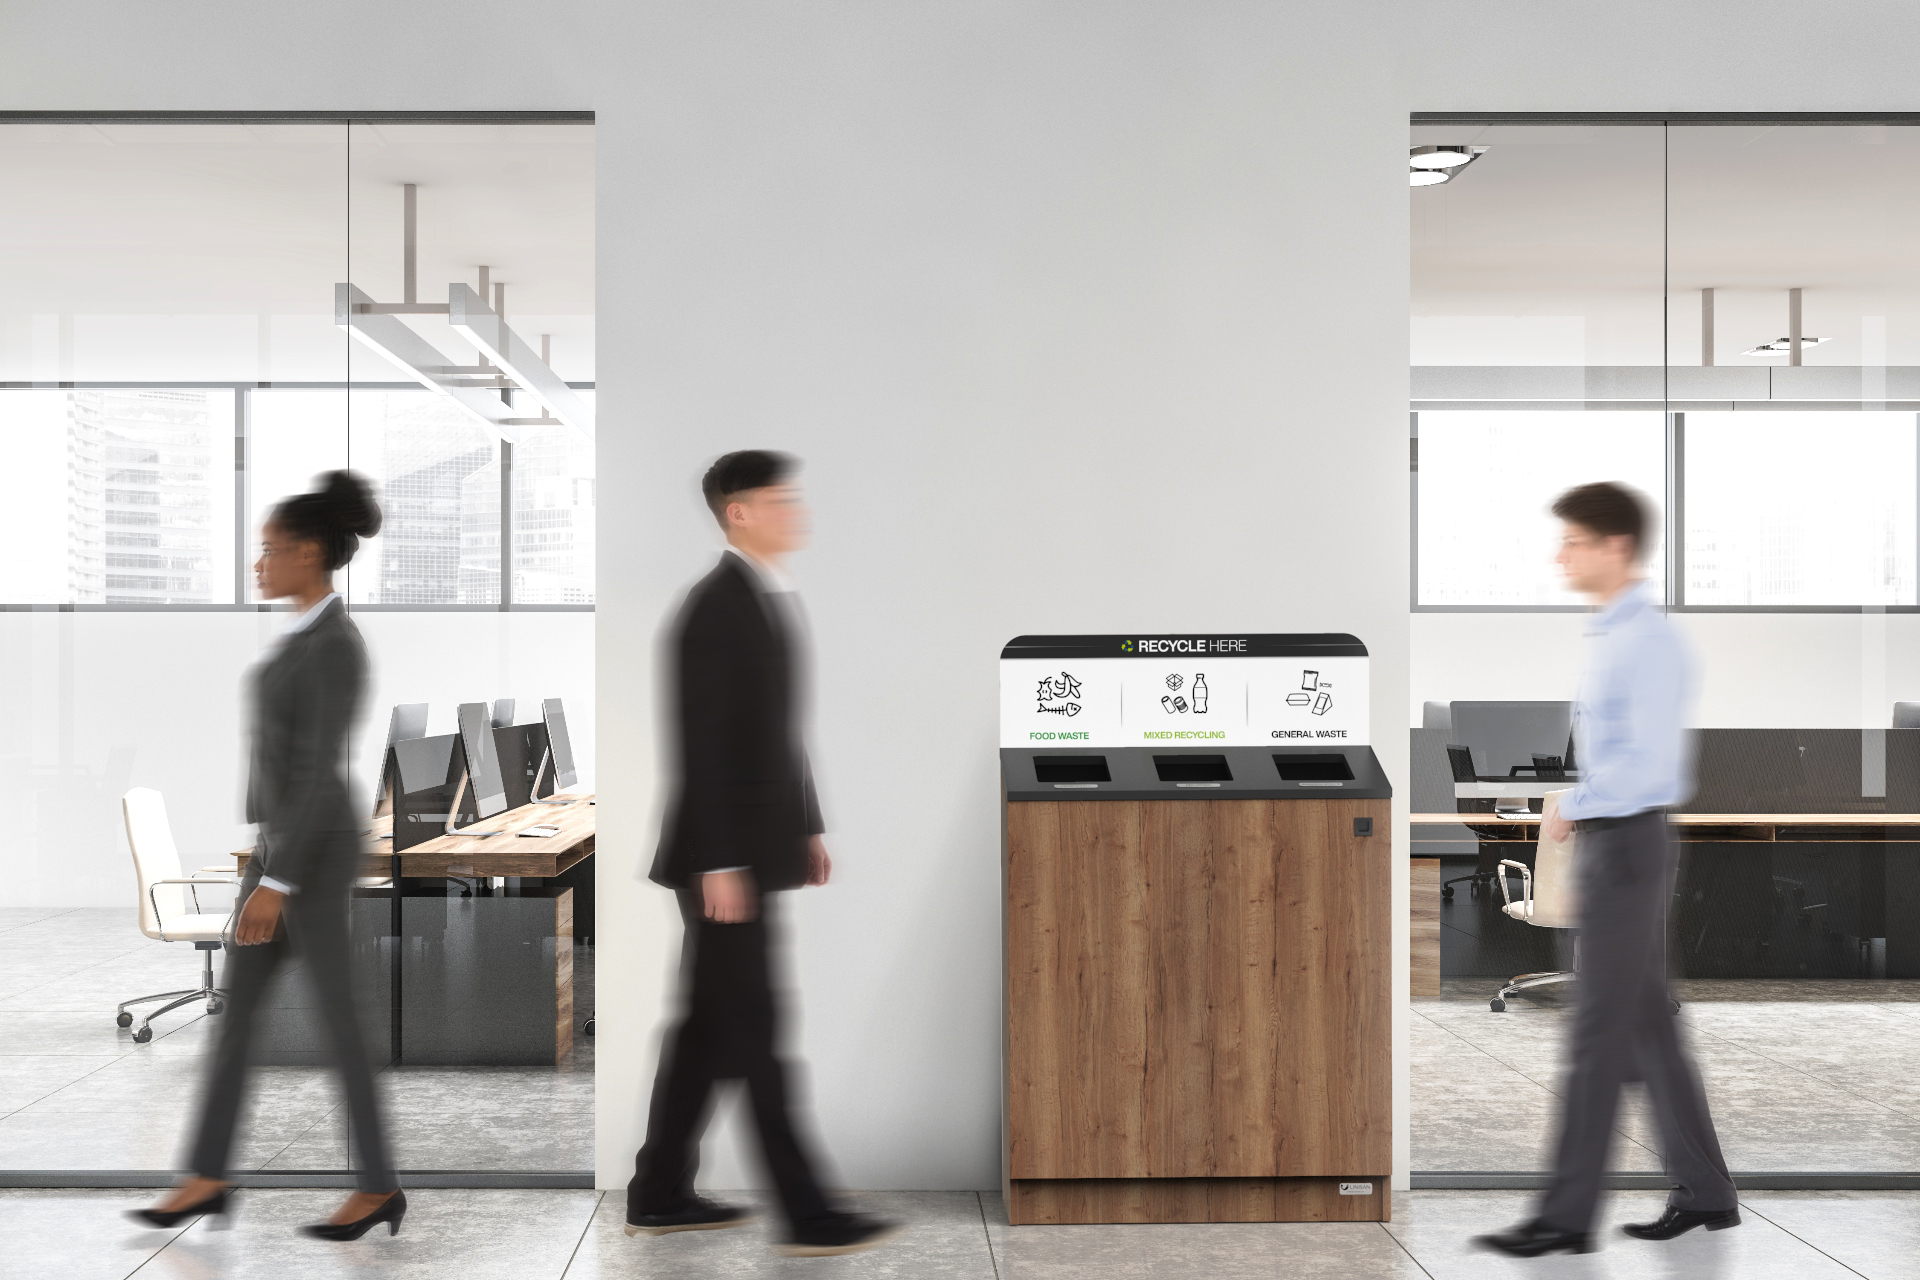 office recycling bins and office waste bins how to encourage recycling at work